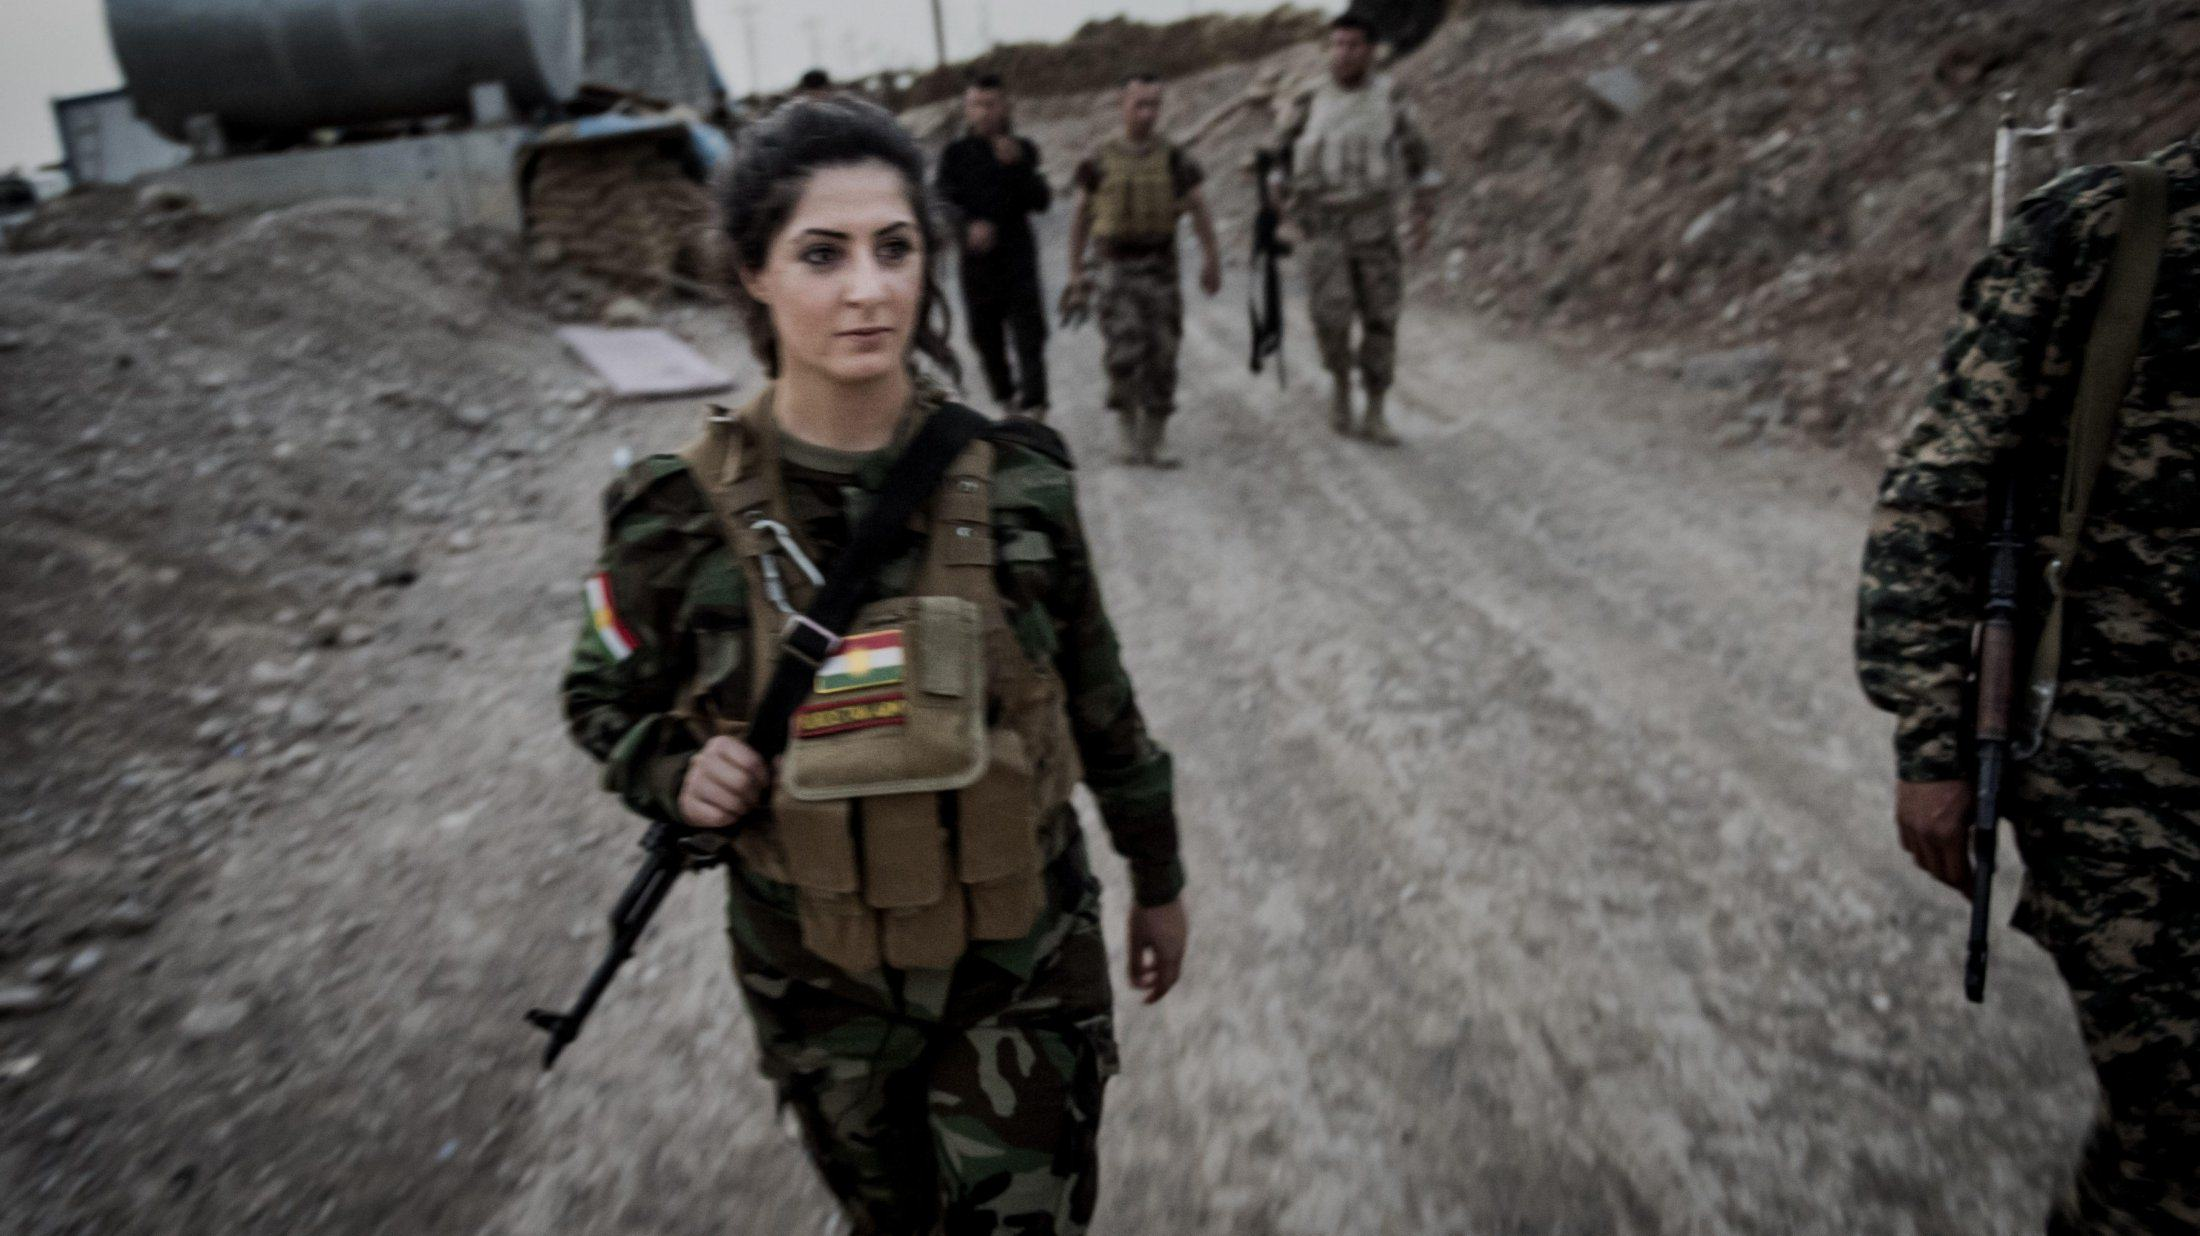 Woman Dropped Out Of College To Fight ISIS, Has Passport Confiscated